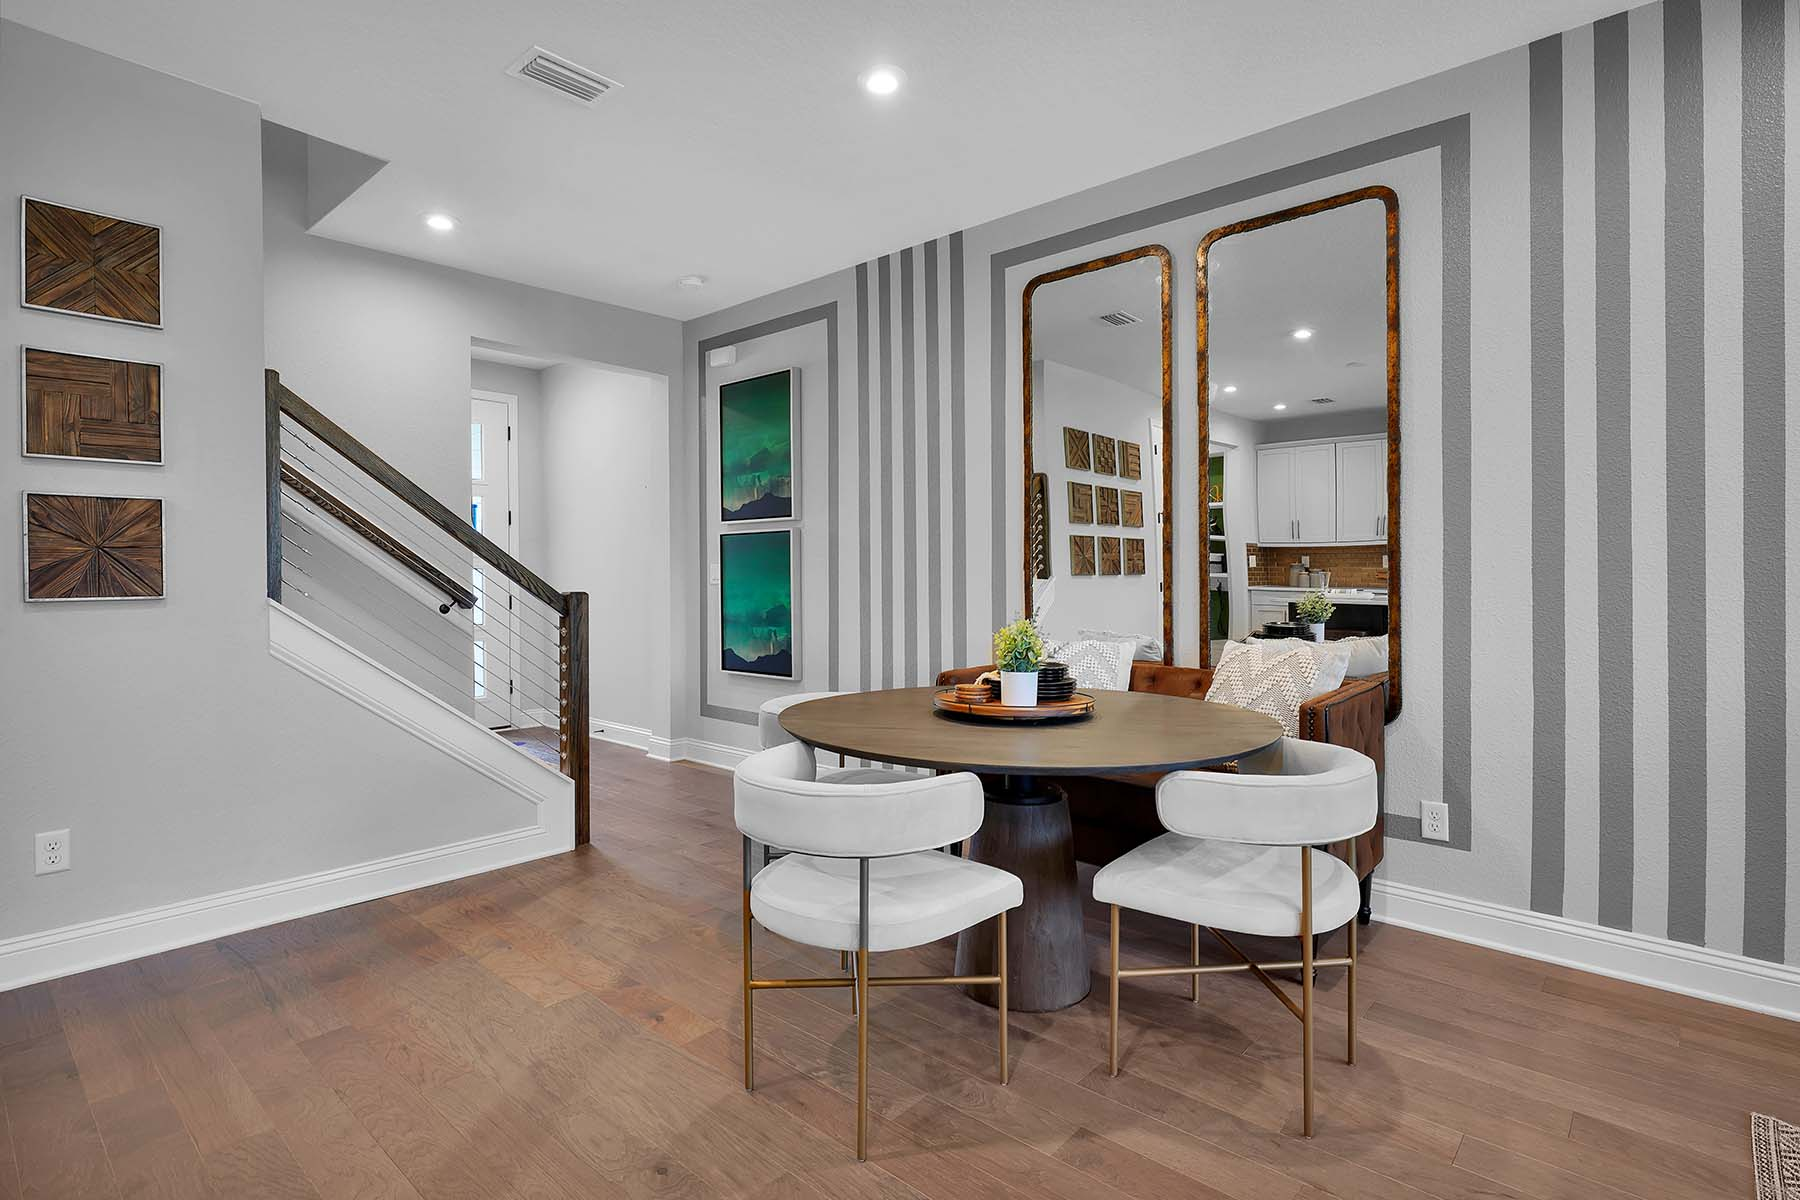 Talise Plan Dining at Pablo Cove in Jacksonville Florida by Mattamy Homes